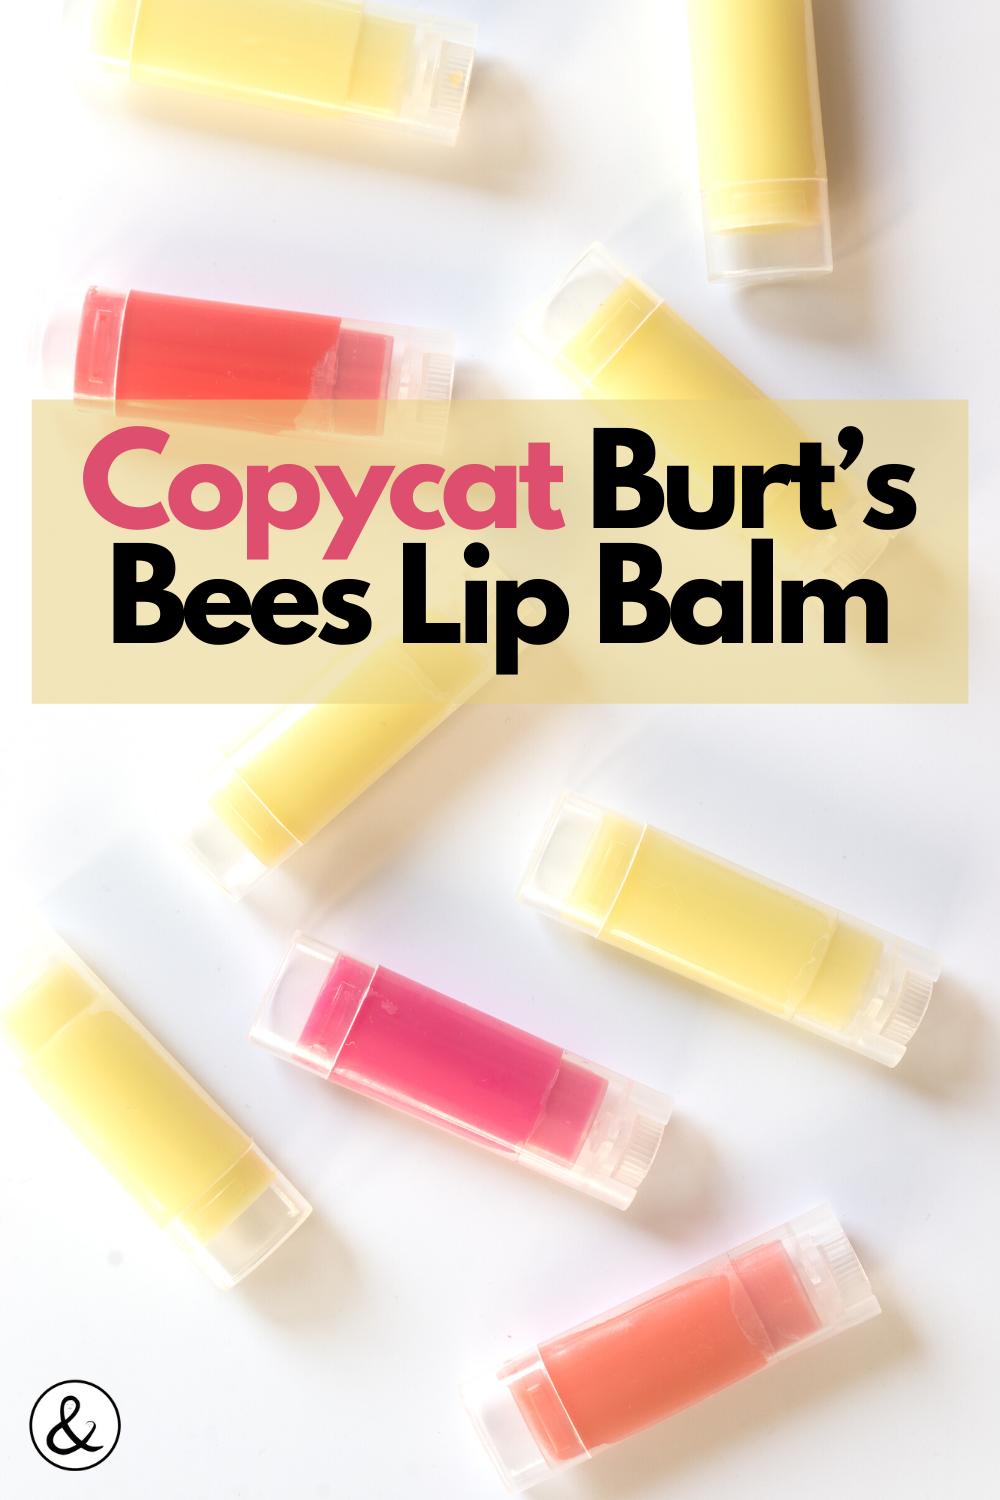 Copy Cat Burt's Bees Lip Balm